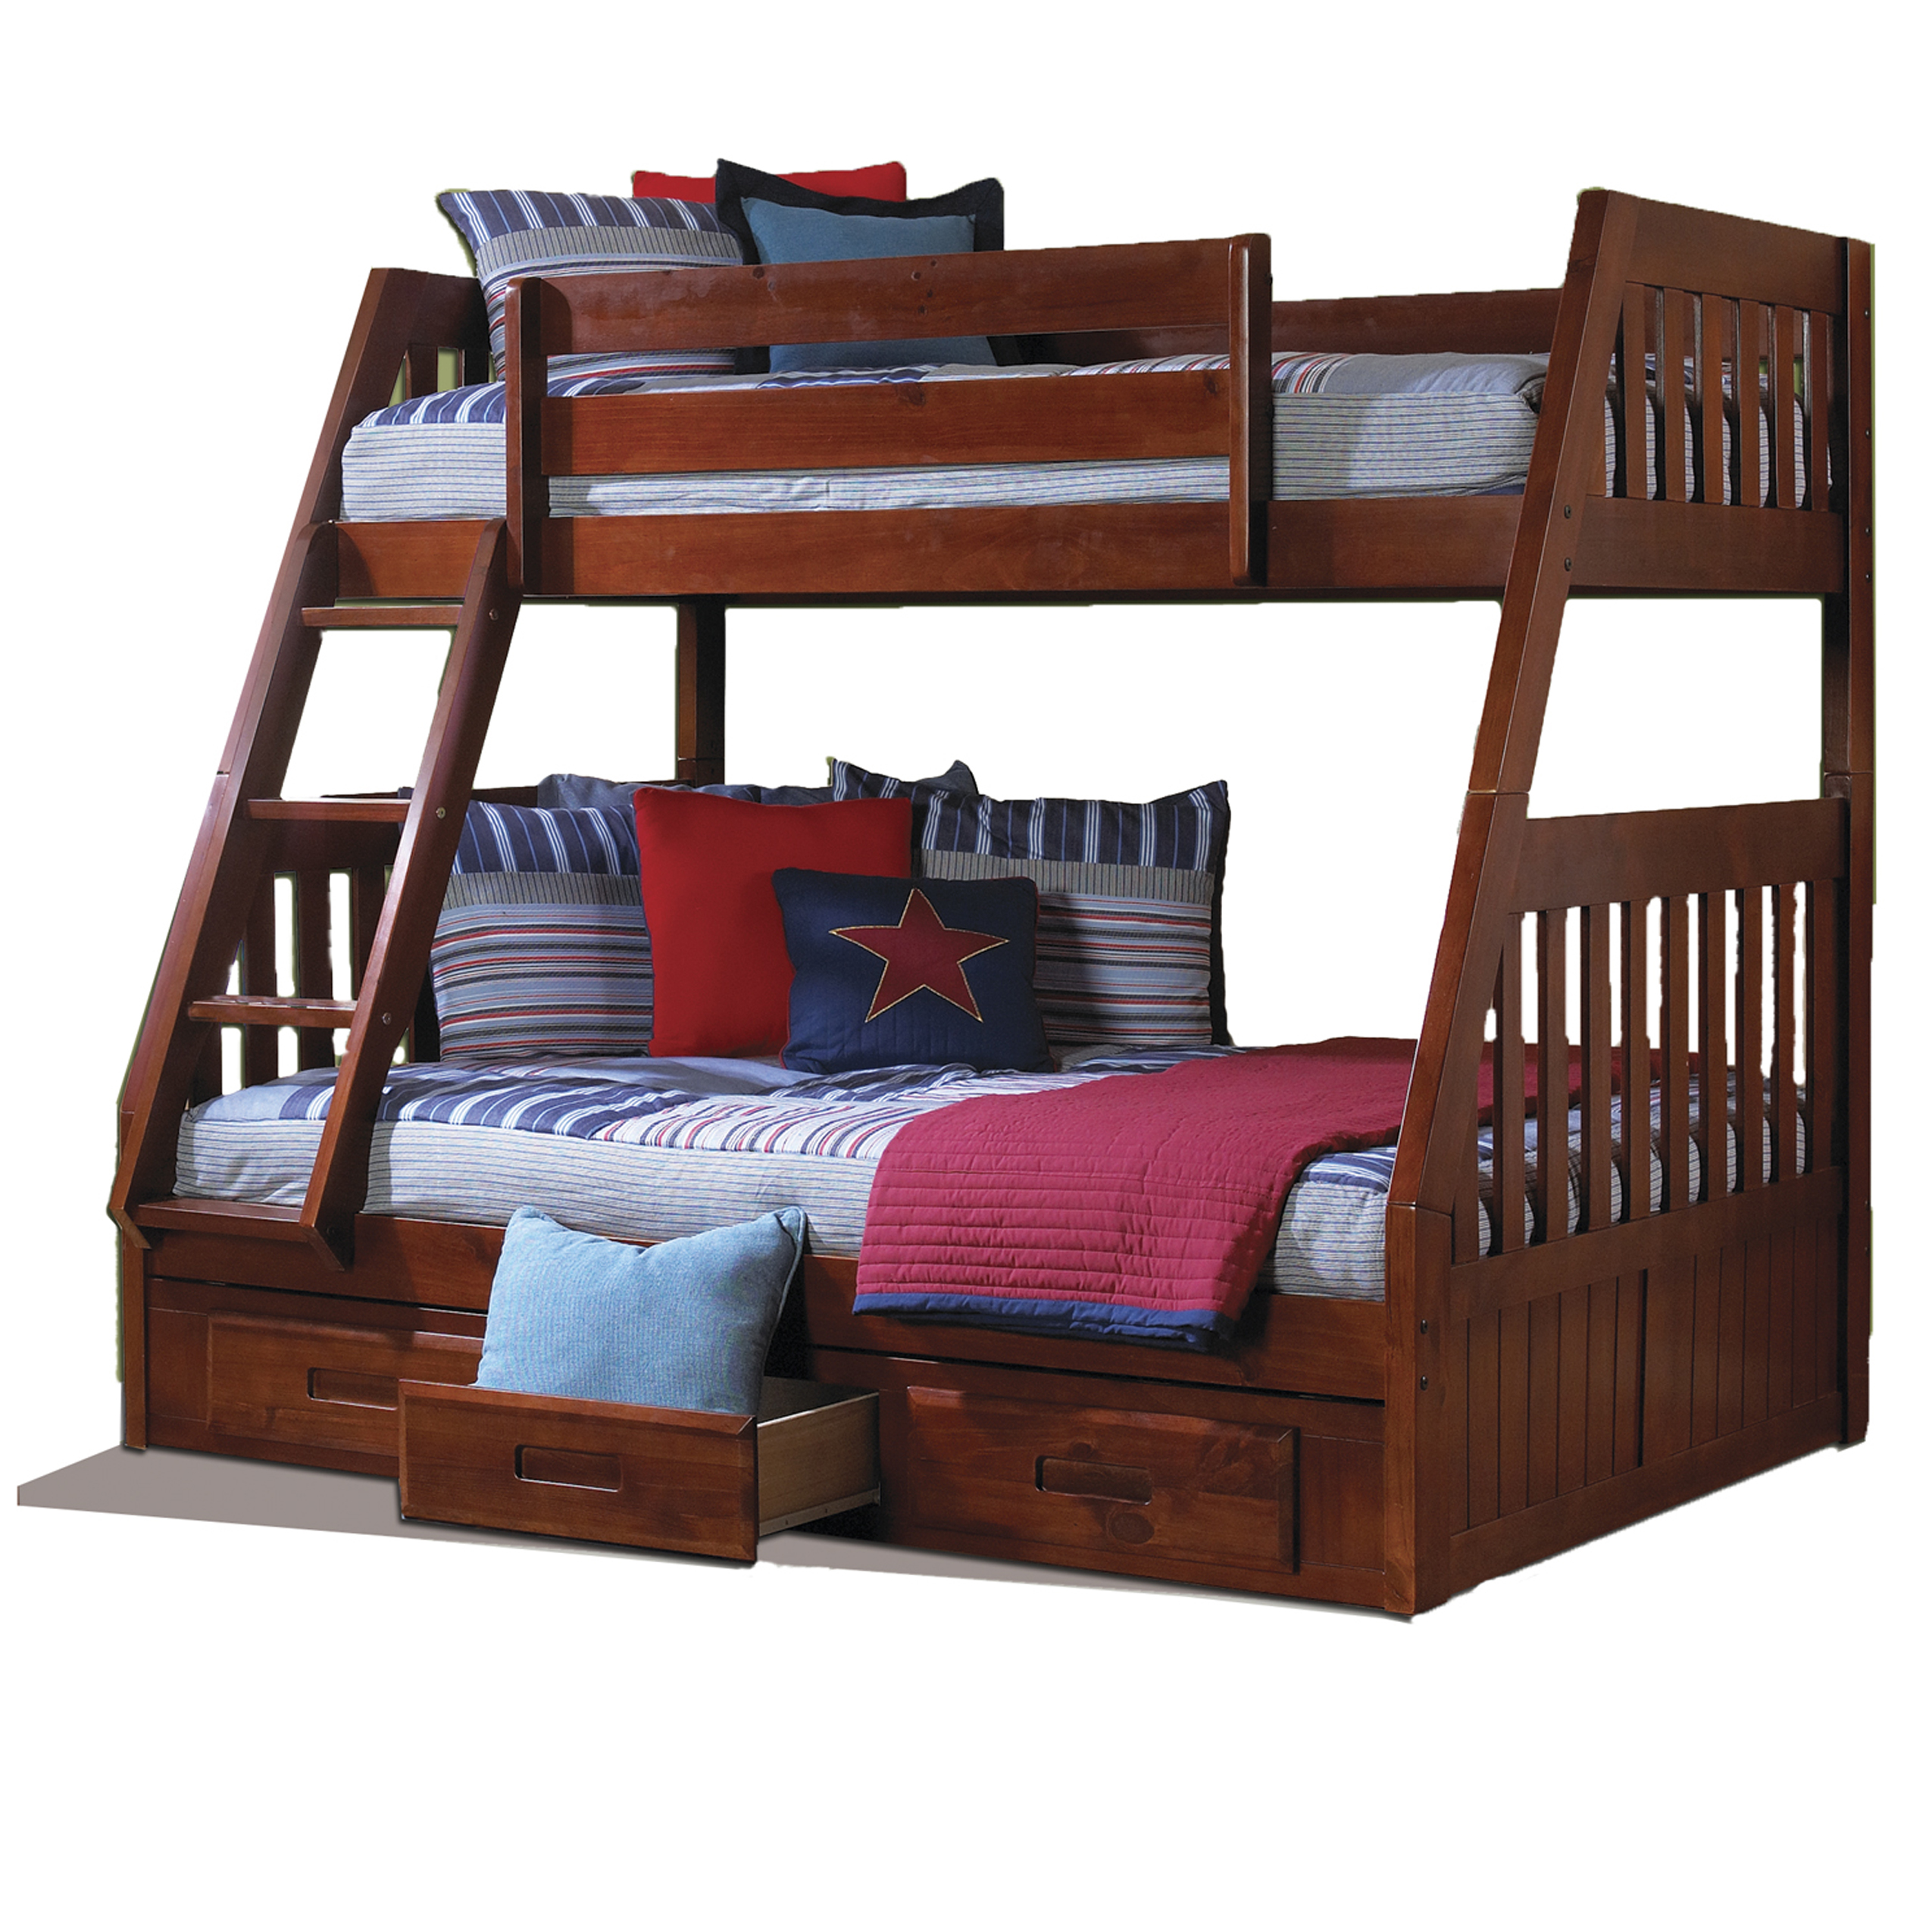 American Furniture Classics Model 2818-TFM, Solid Pine Mission Staircase Twin/Full Bunk Bed with Three Drawers in Merlot.